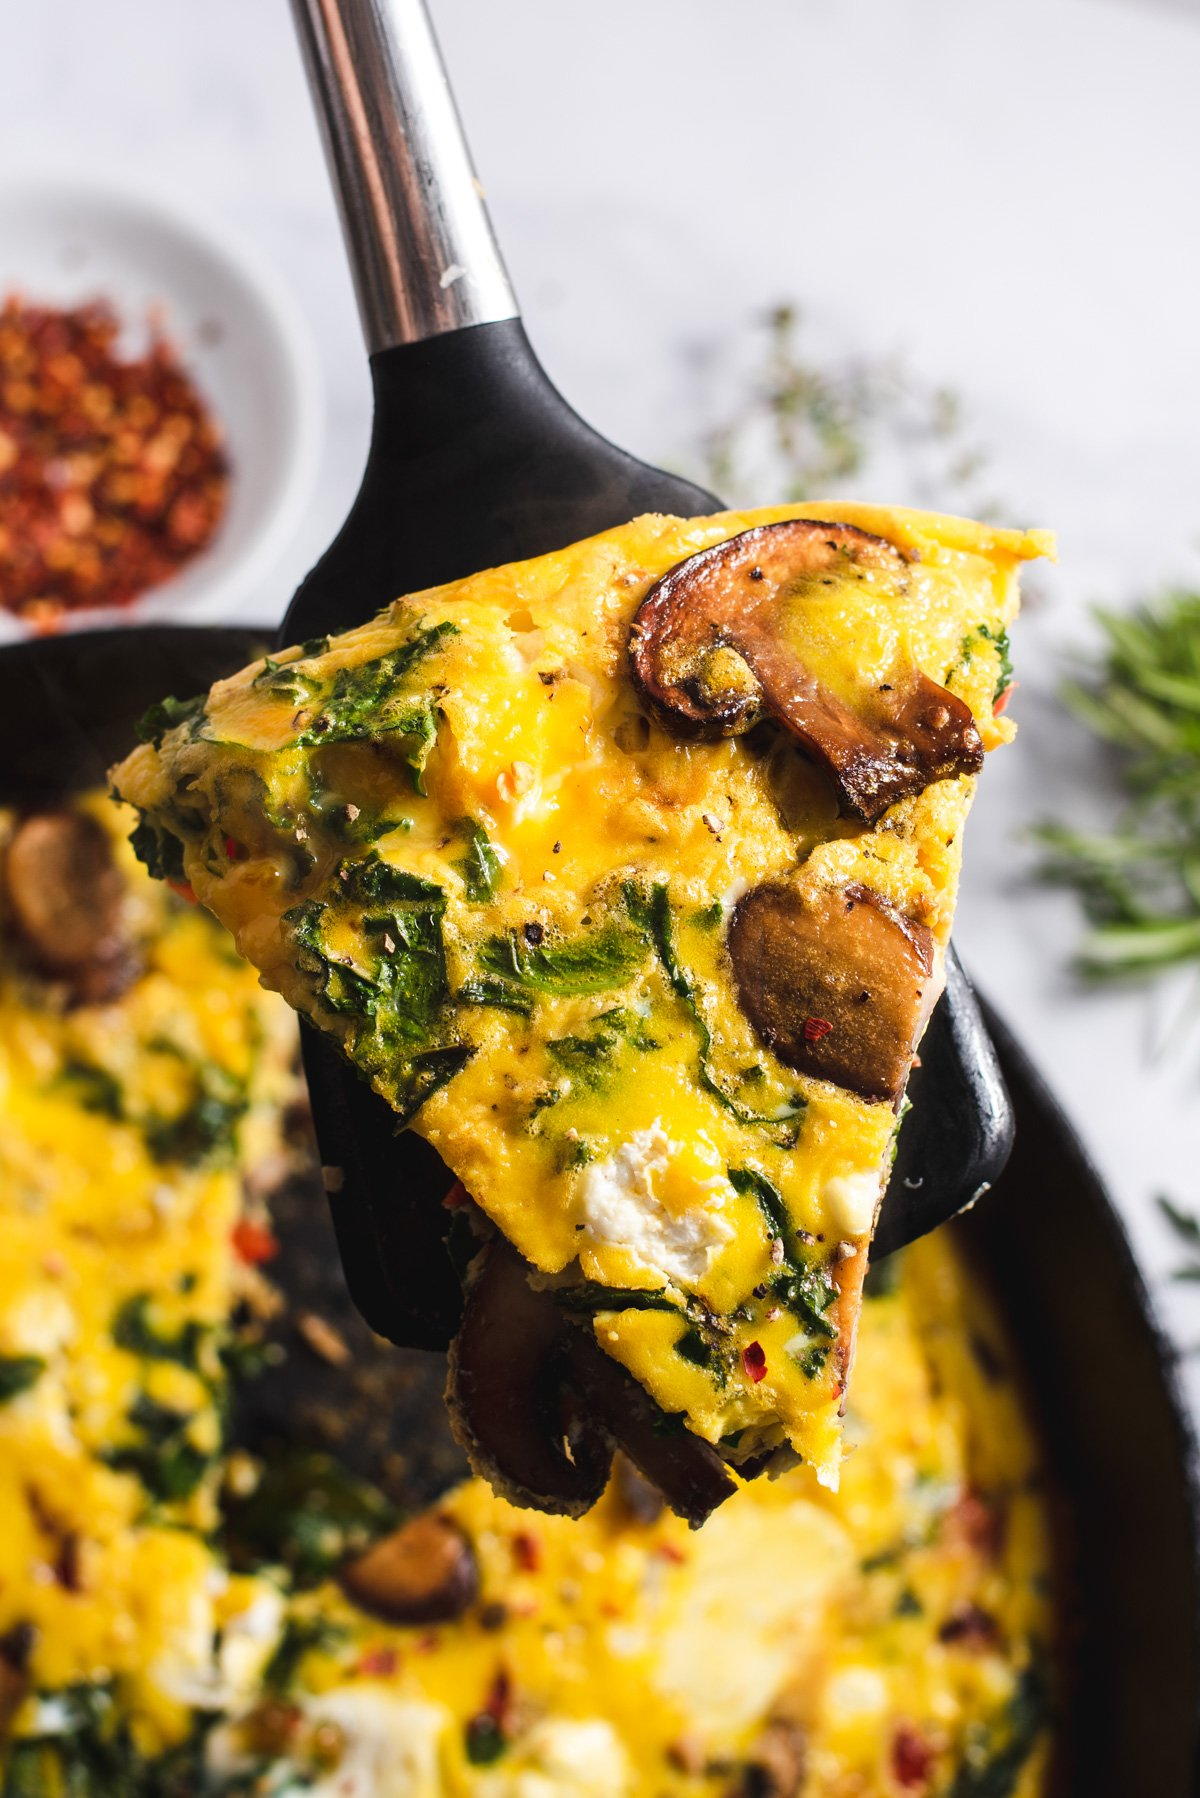 Pie shaped slice of frittata on a spatula